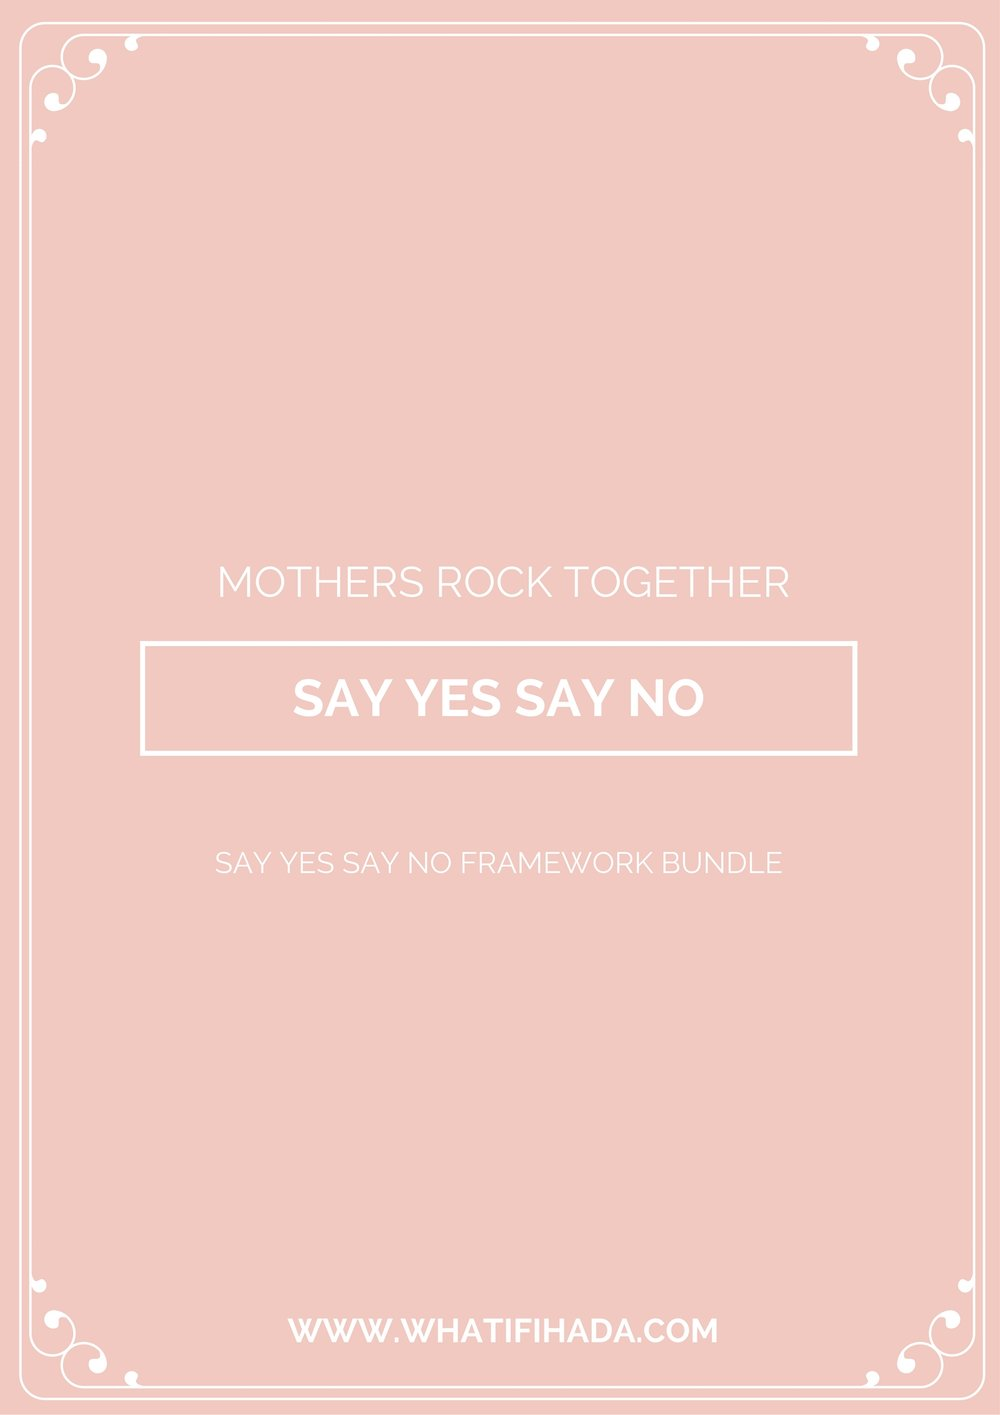 Yes and No Framework Printable